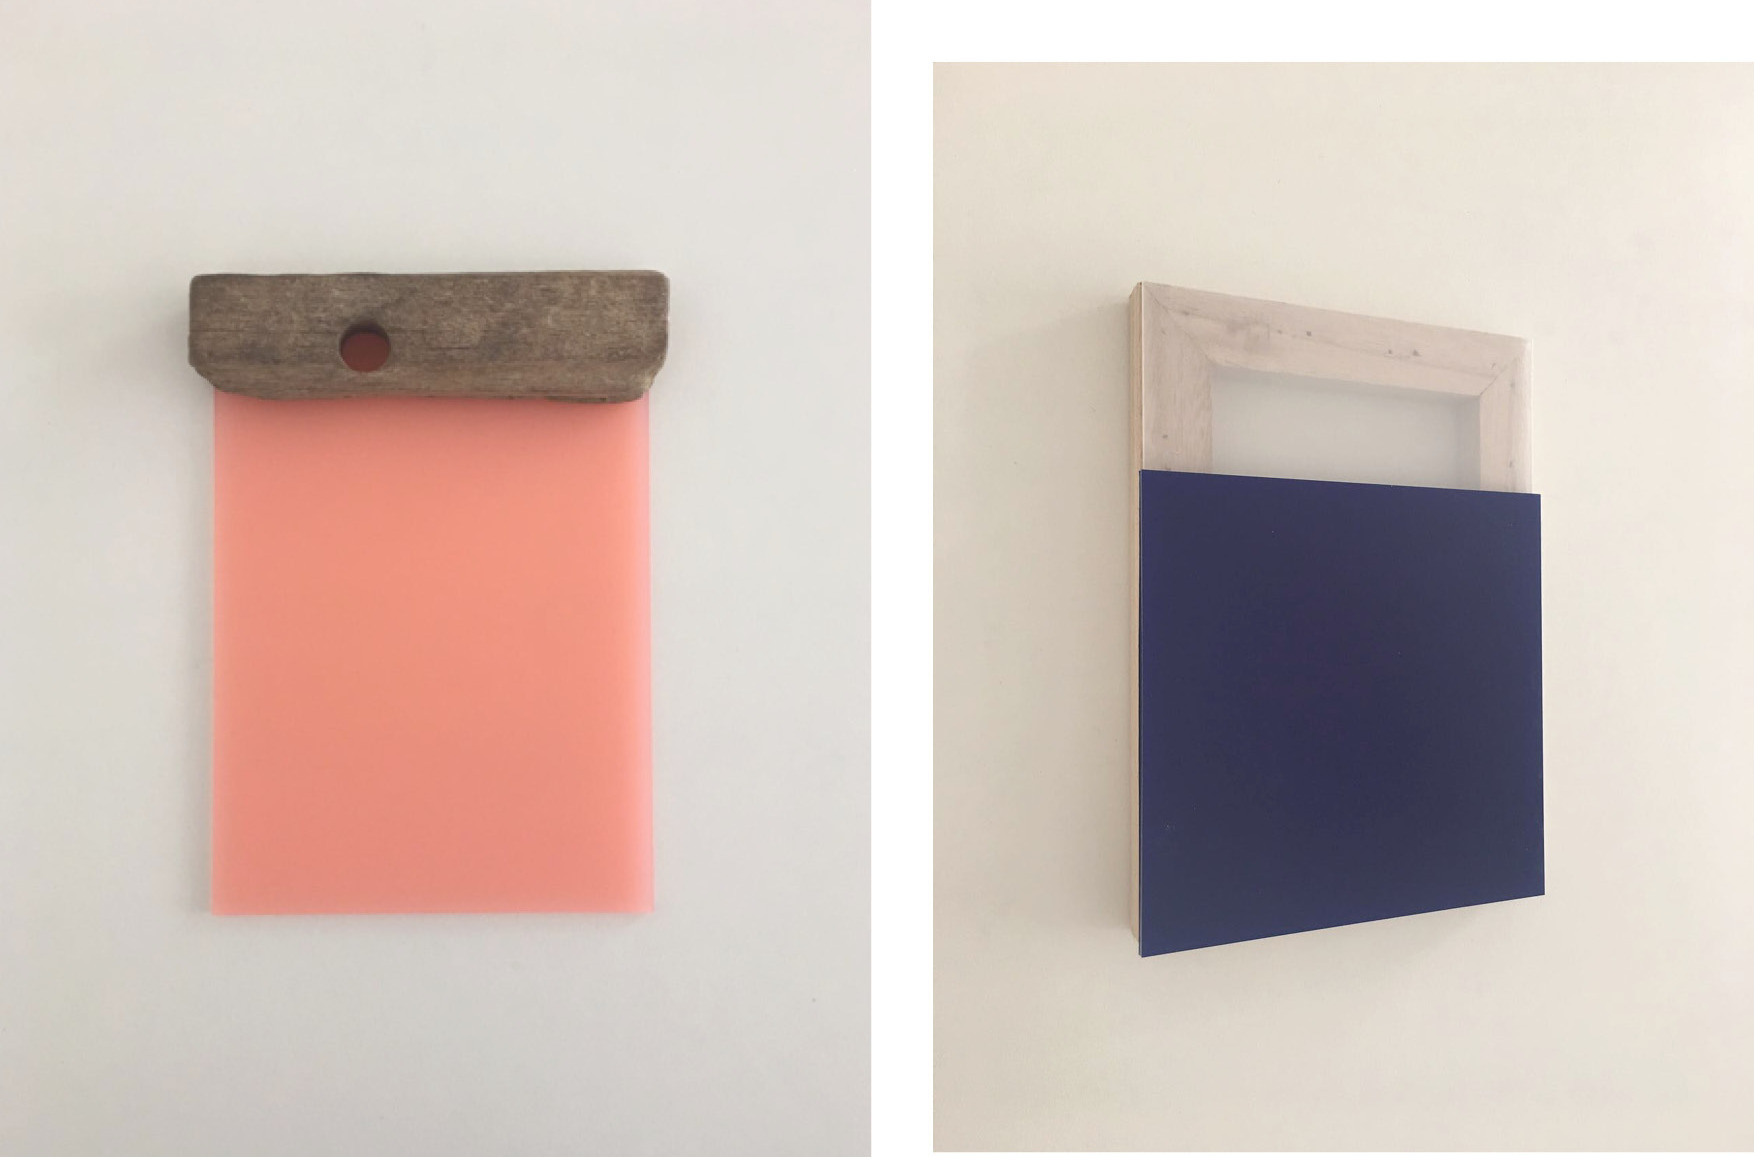 Poseidon' son, 21.5 x 15.5 x 2 cm (2017) Handpicked chunk of wood (East Sussex) on pink plexiglass (l) & Ral, 21.2 x 15 x 1.5 cm (2017) Plexiglass sheets (transparent and blue) on wooden frame